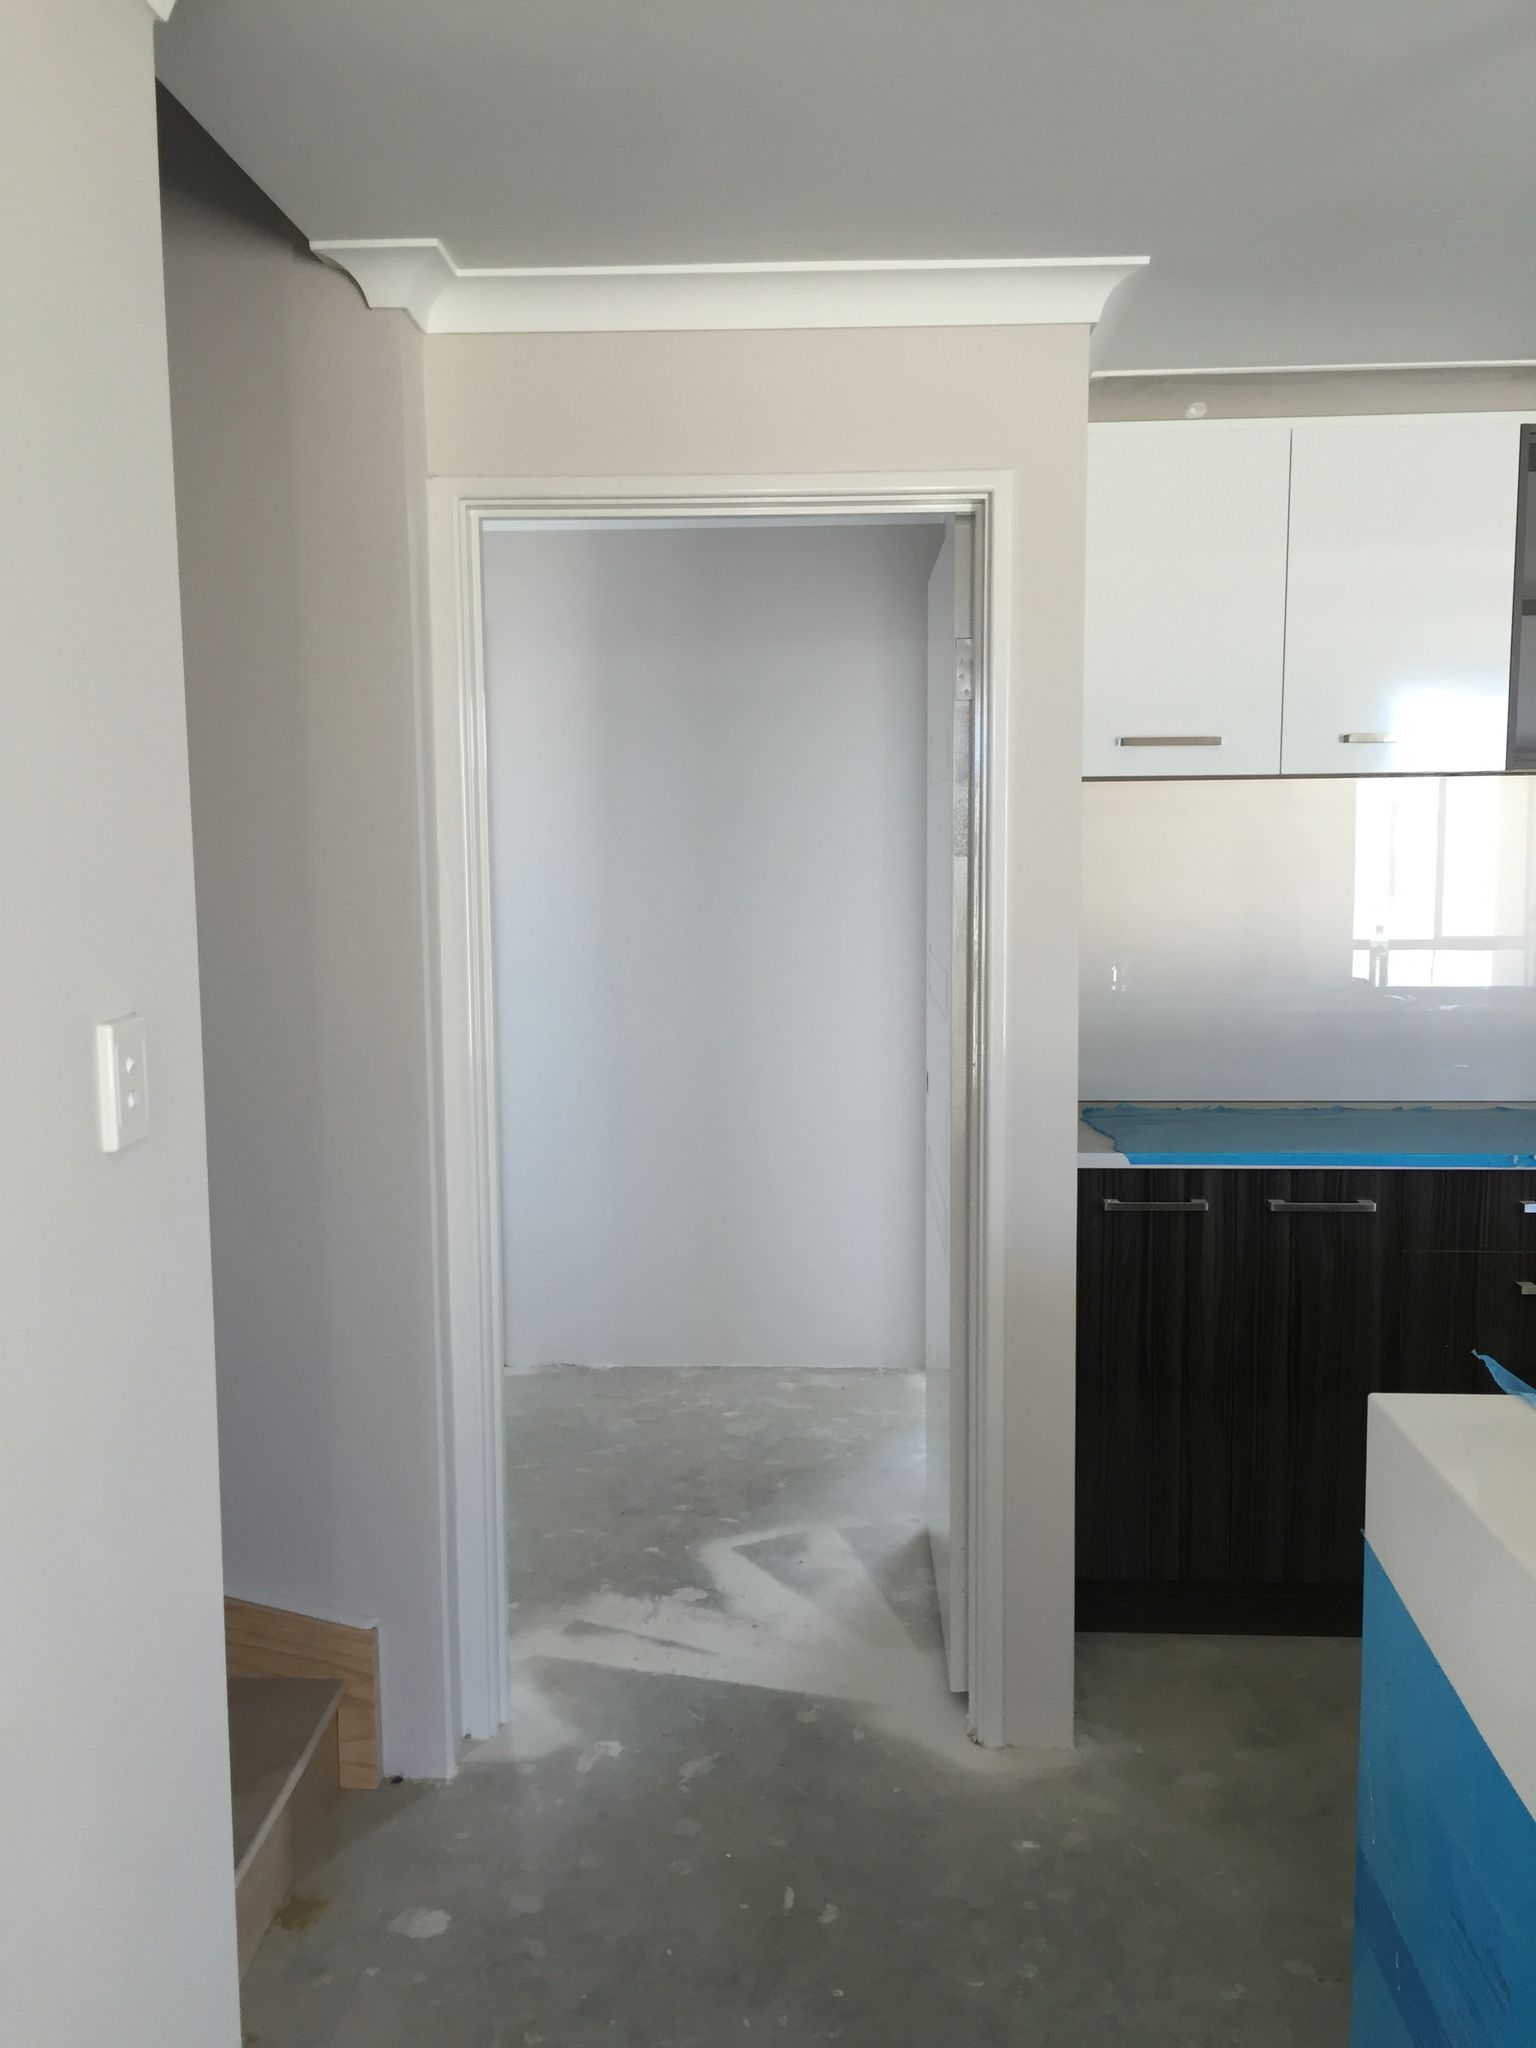 Wall Paint Interior Home Wall Painting Colours: Dulux Limed White Half